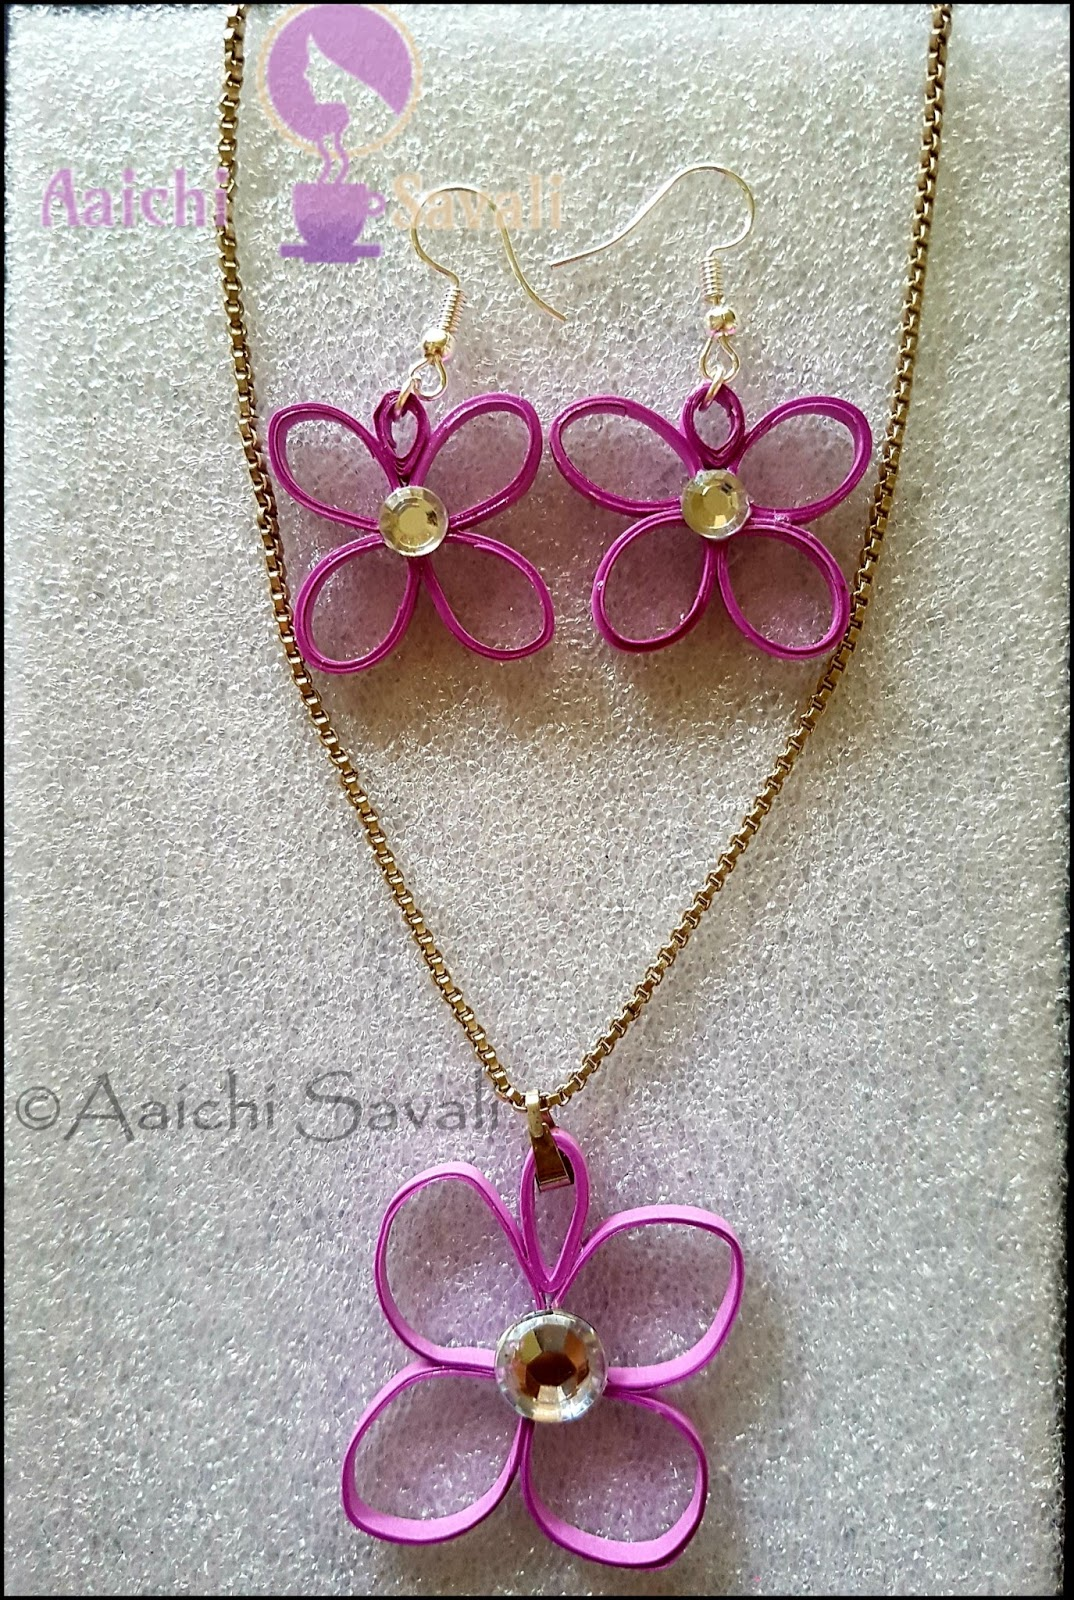 Quilling necklace and earring set aaichi savali this tutorial will show you how to make a purple quilling paper flower earrings and necklace or pendant the basic materials used are paper of various mightylinksfo